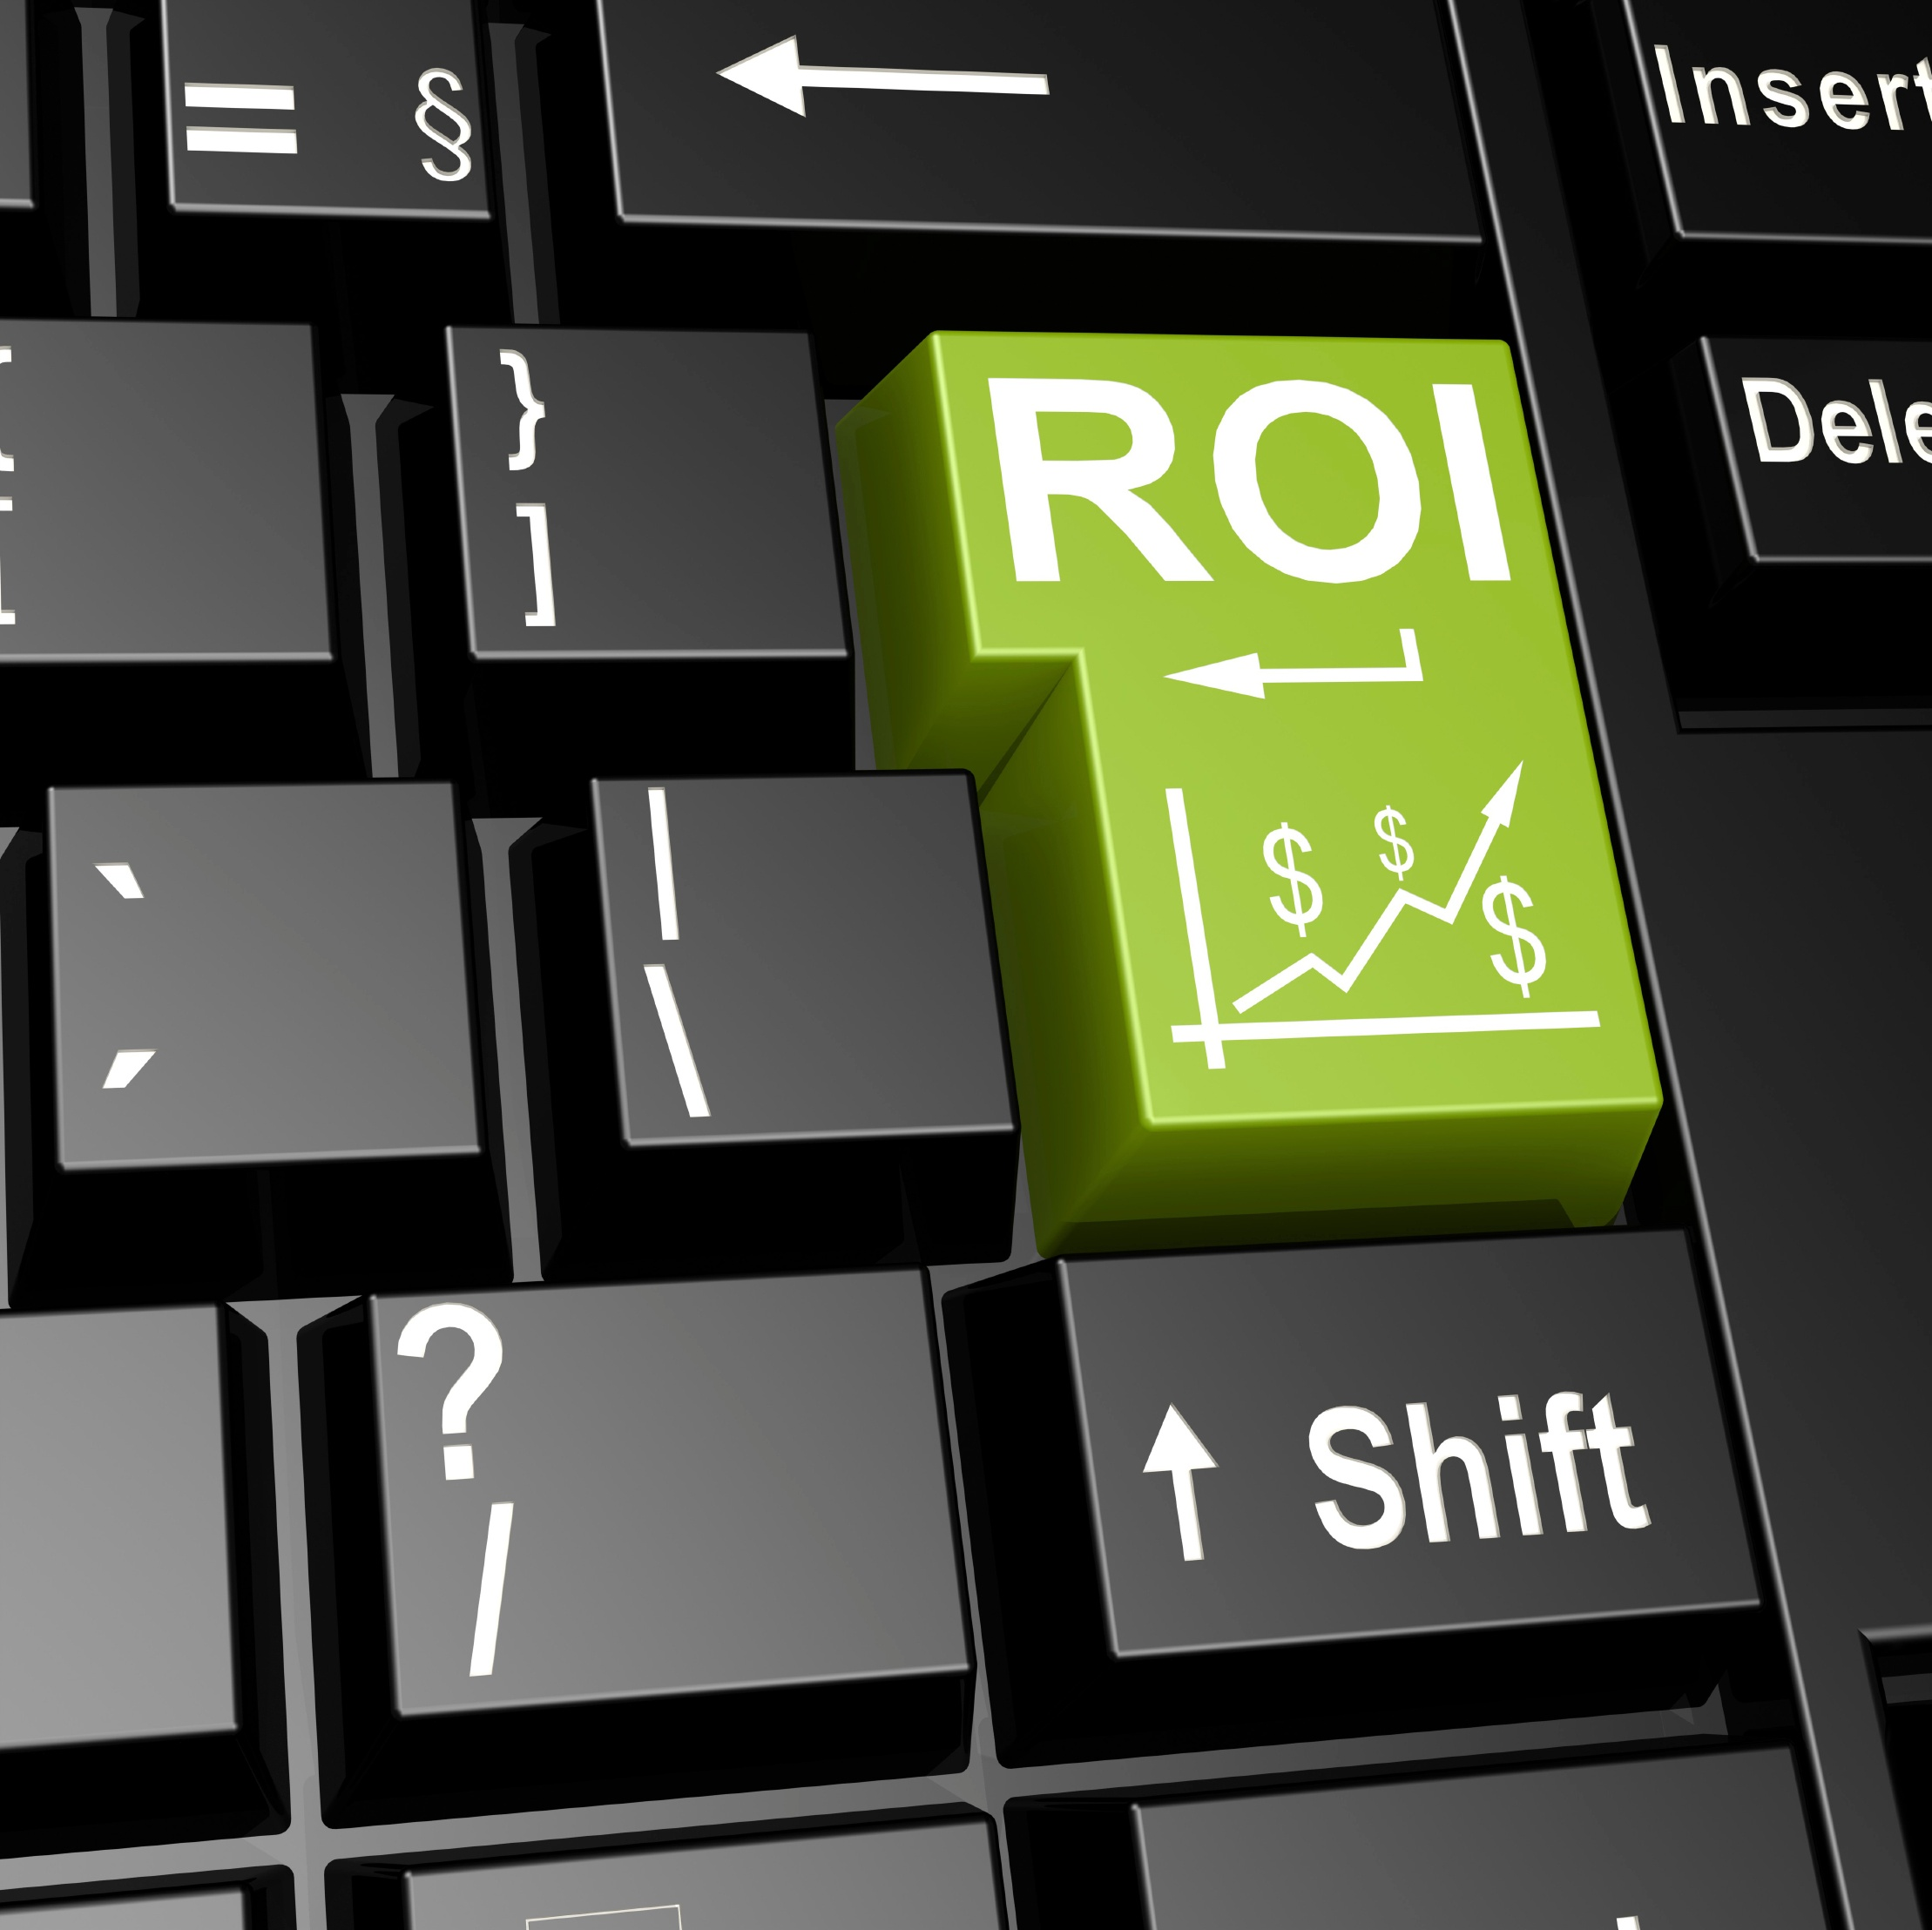 Recycling Containers: How to Maximize Your ROI